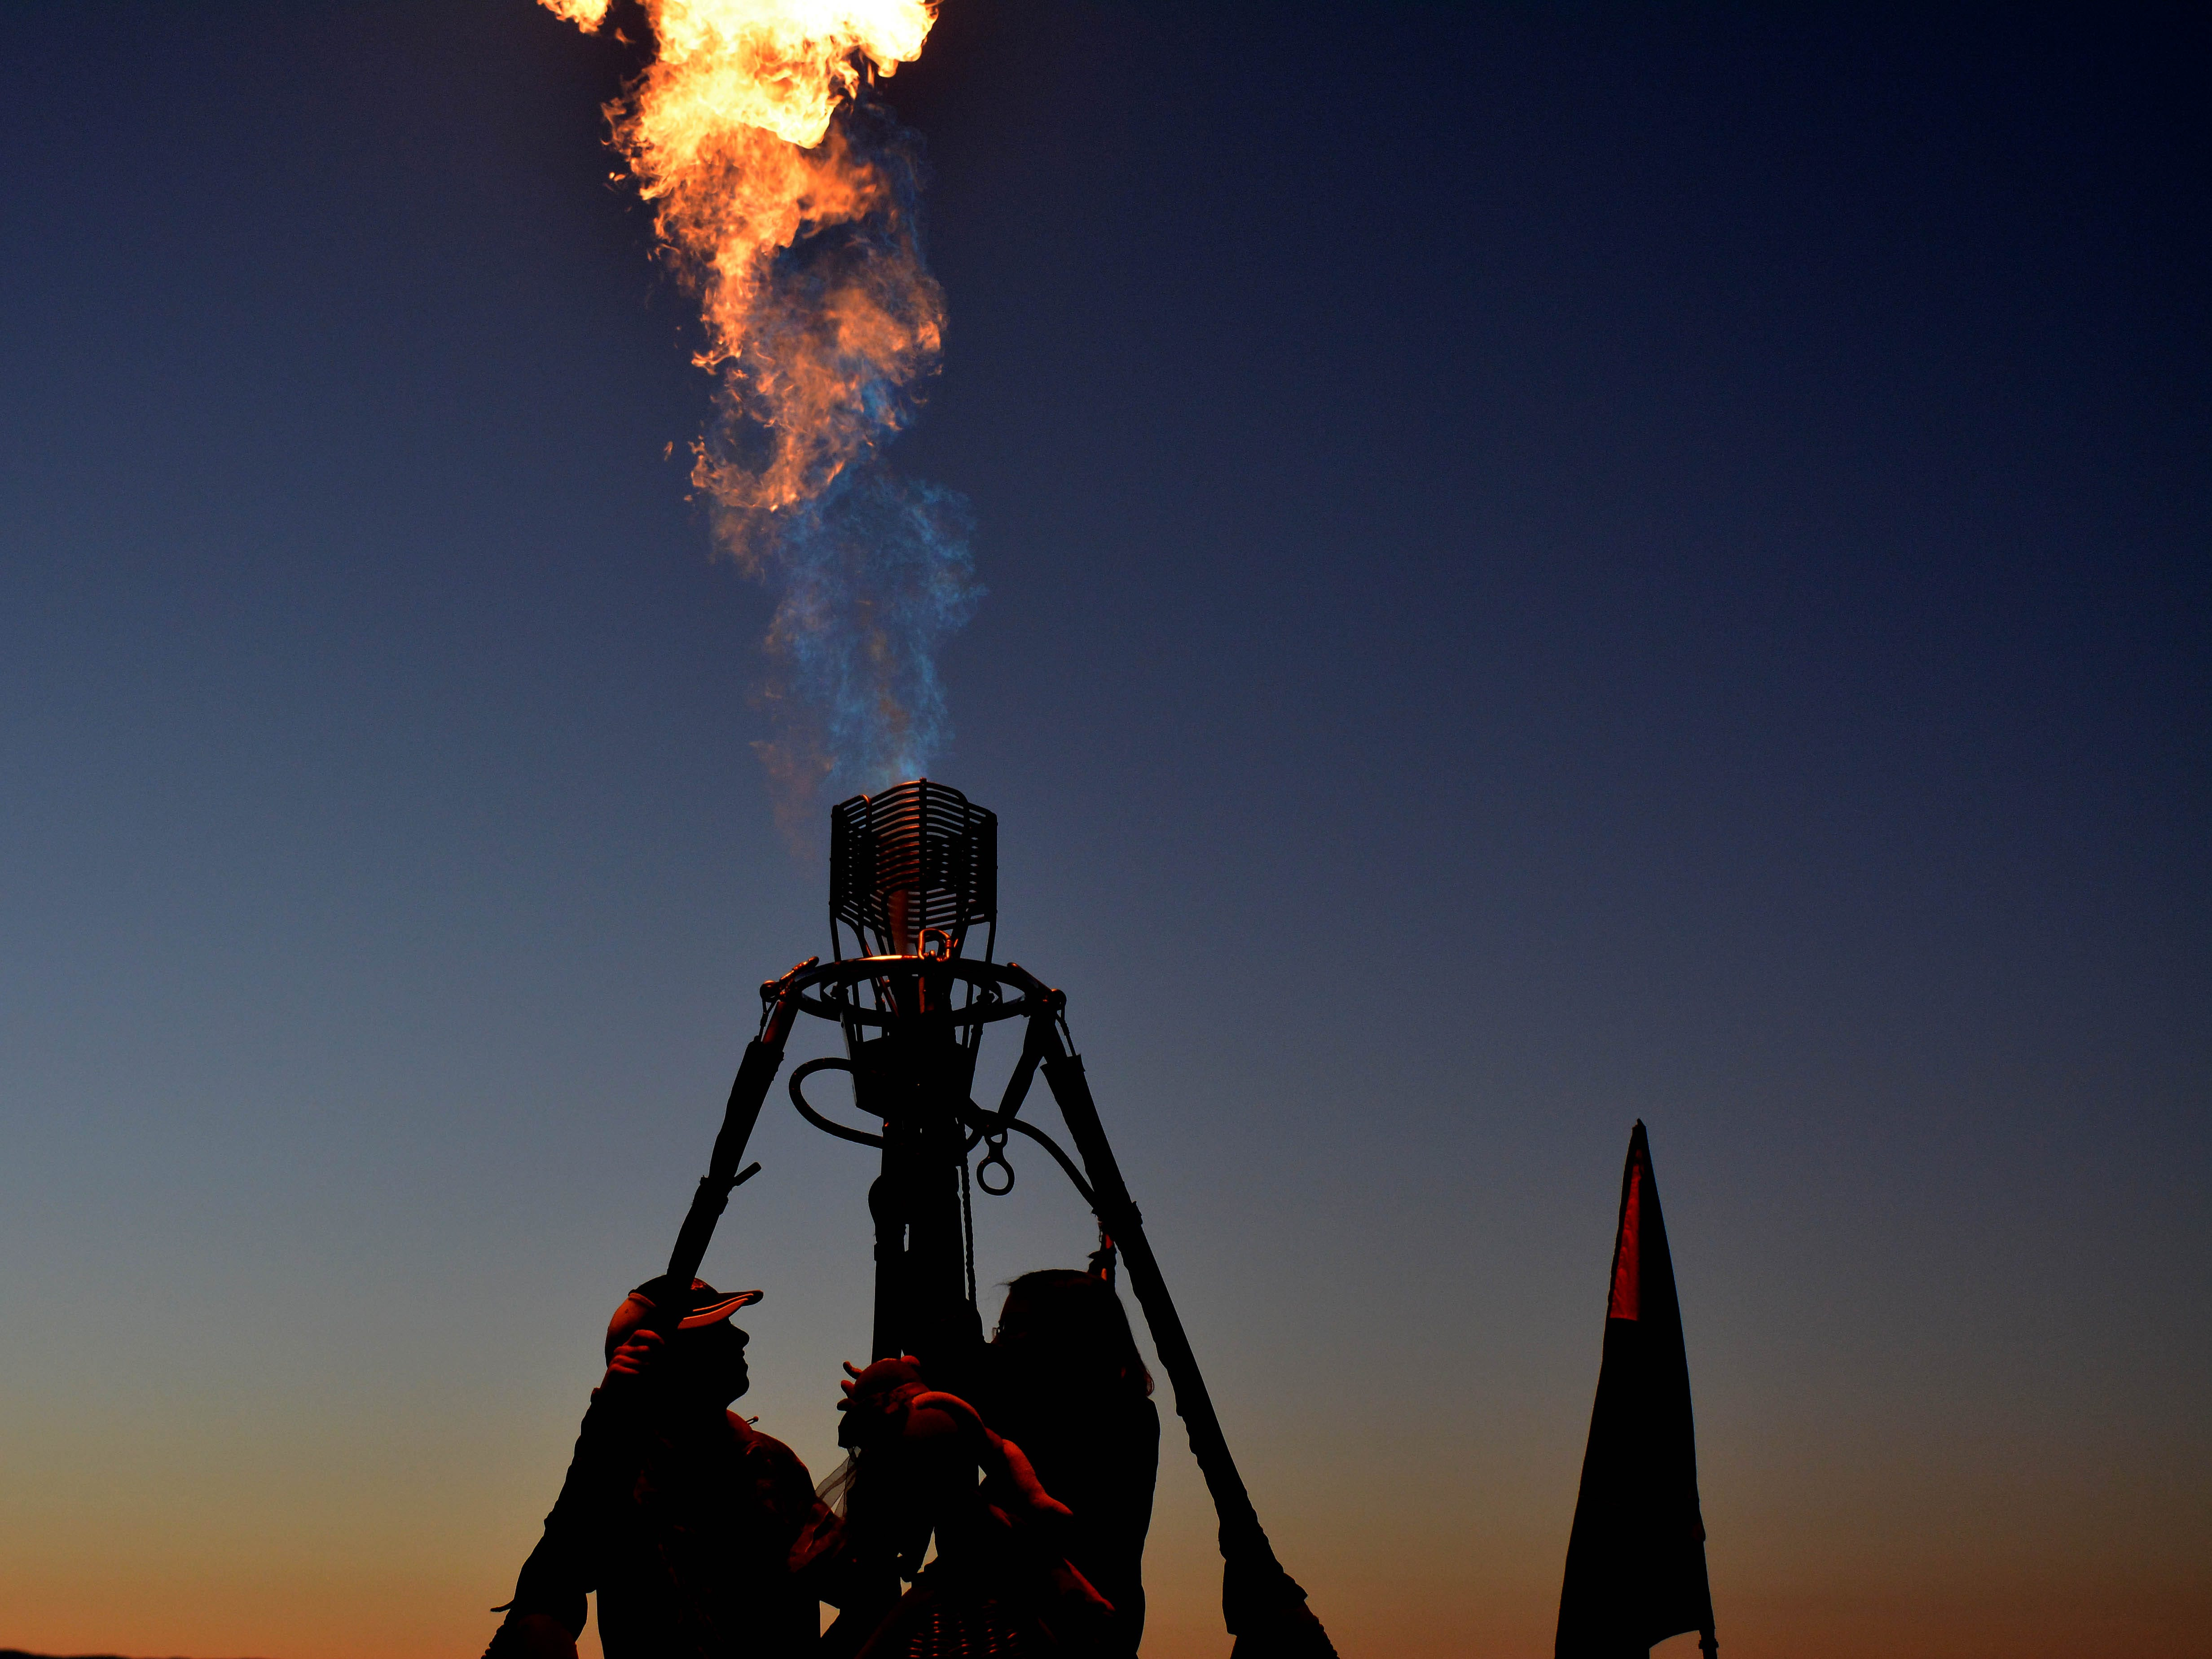 A balloon pilot tests the propane burner before the sun rises Saturday, Sept. 15, 2018 at the White Sands Balloon Invitational.